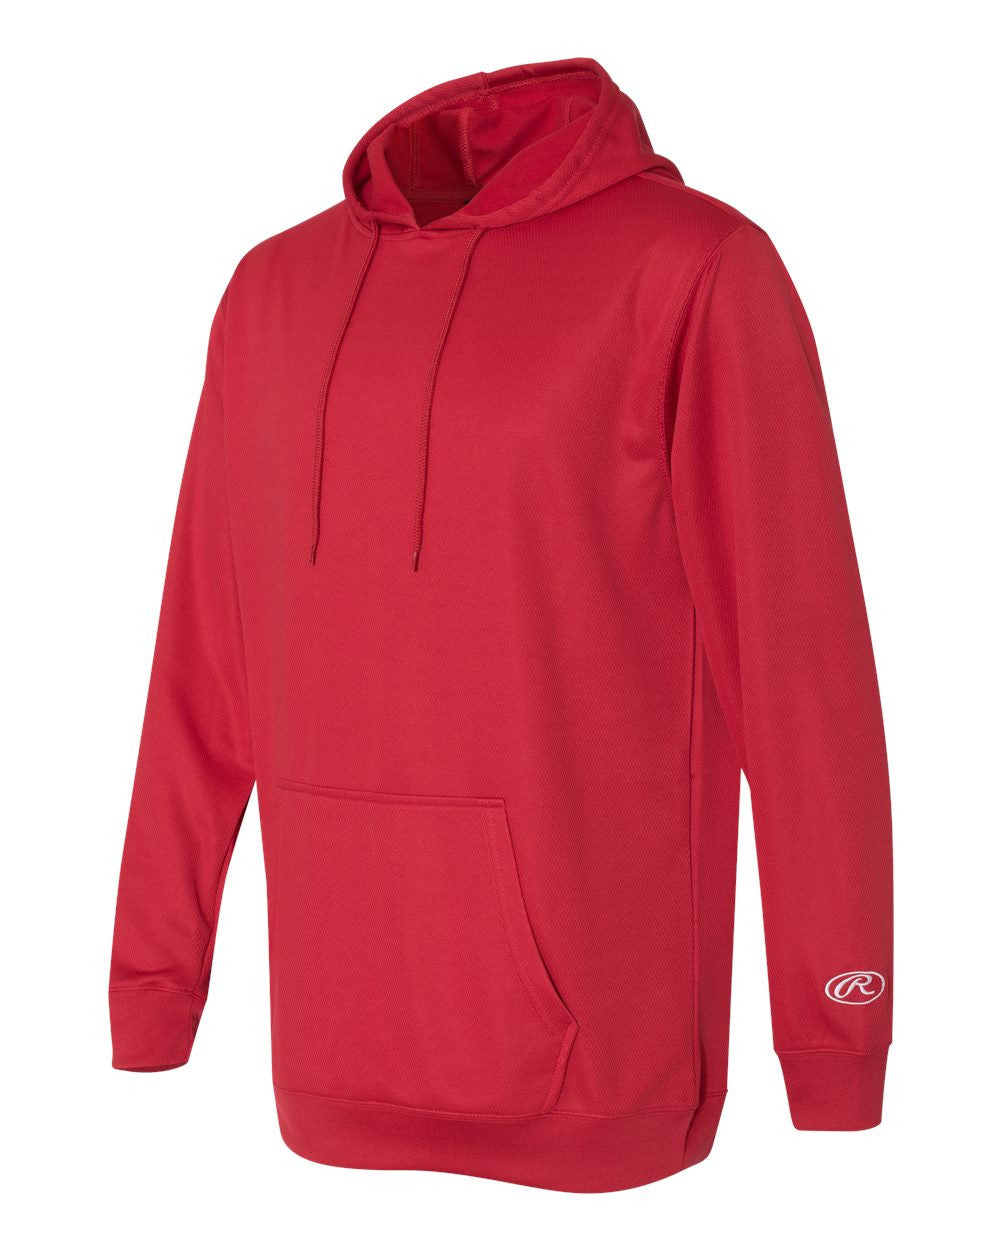 VLL Majors Twins - ADULT Rawlings Mesh Fleece Hooded Sweatshirt - Red